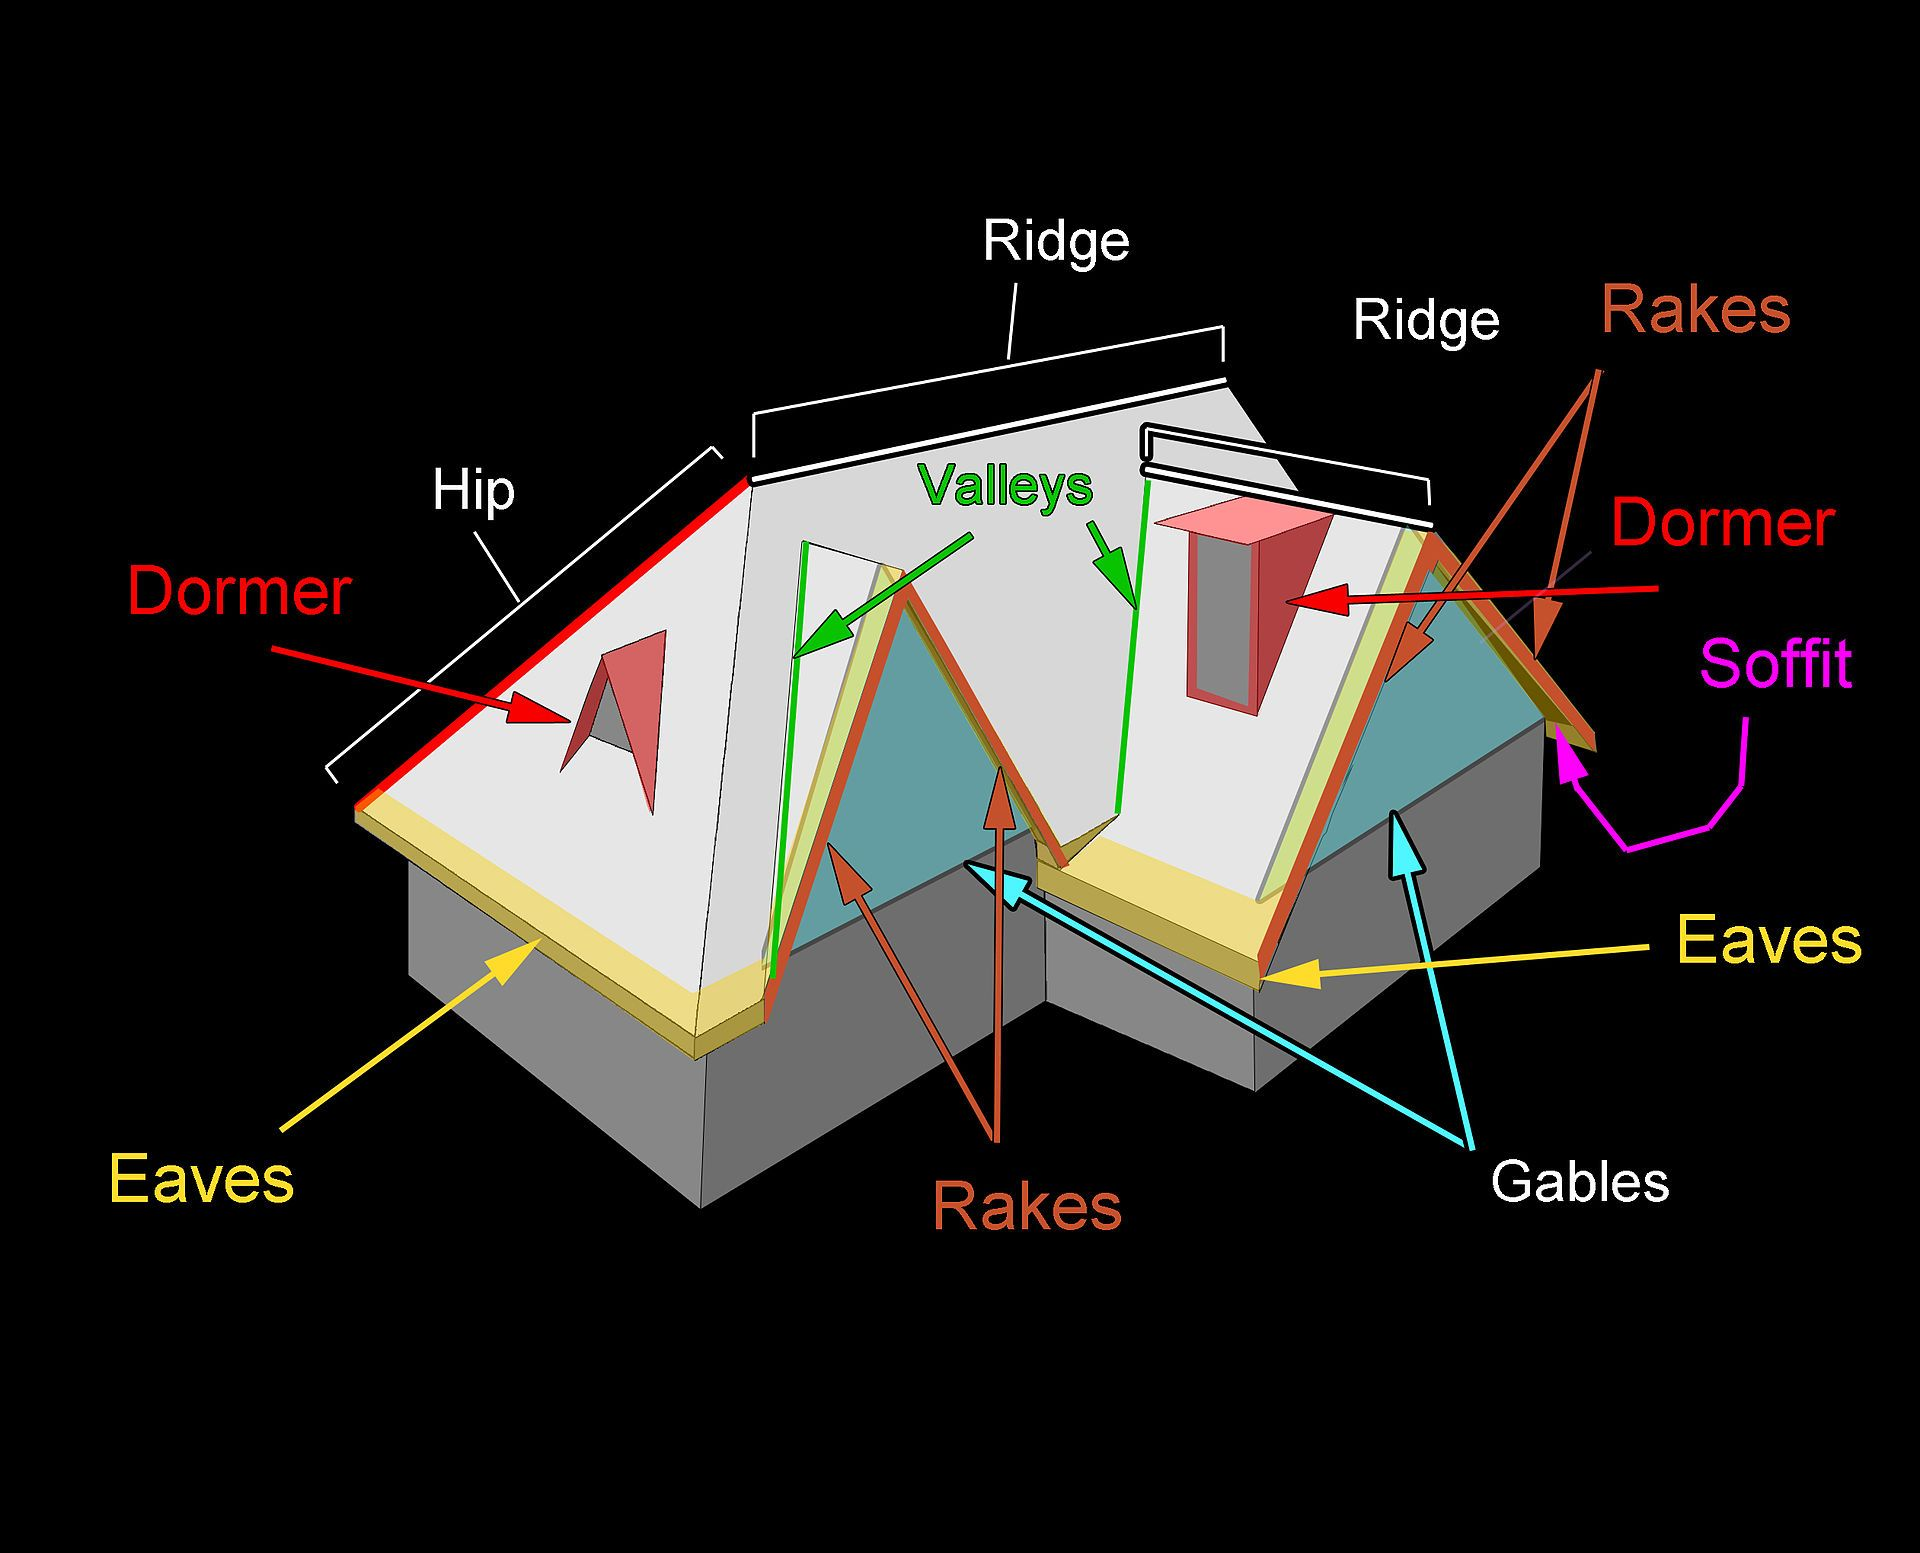 Terminology Of Some Roof Parts Roof Shapes Roofing Calculator Roof Architecture